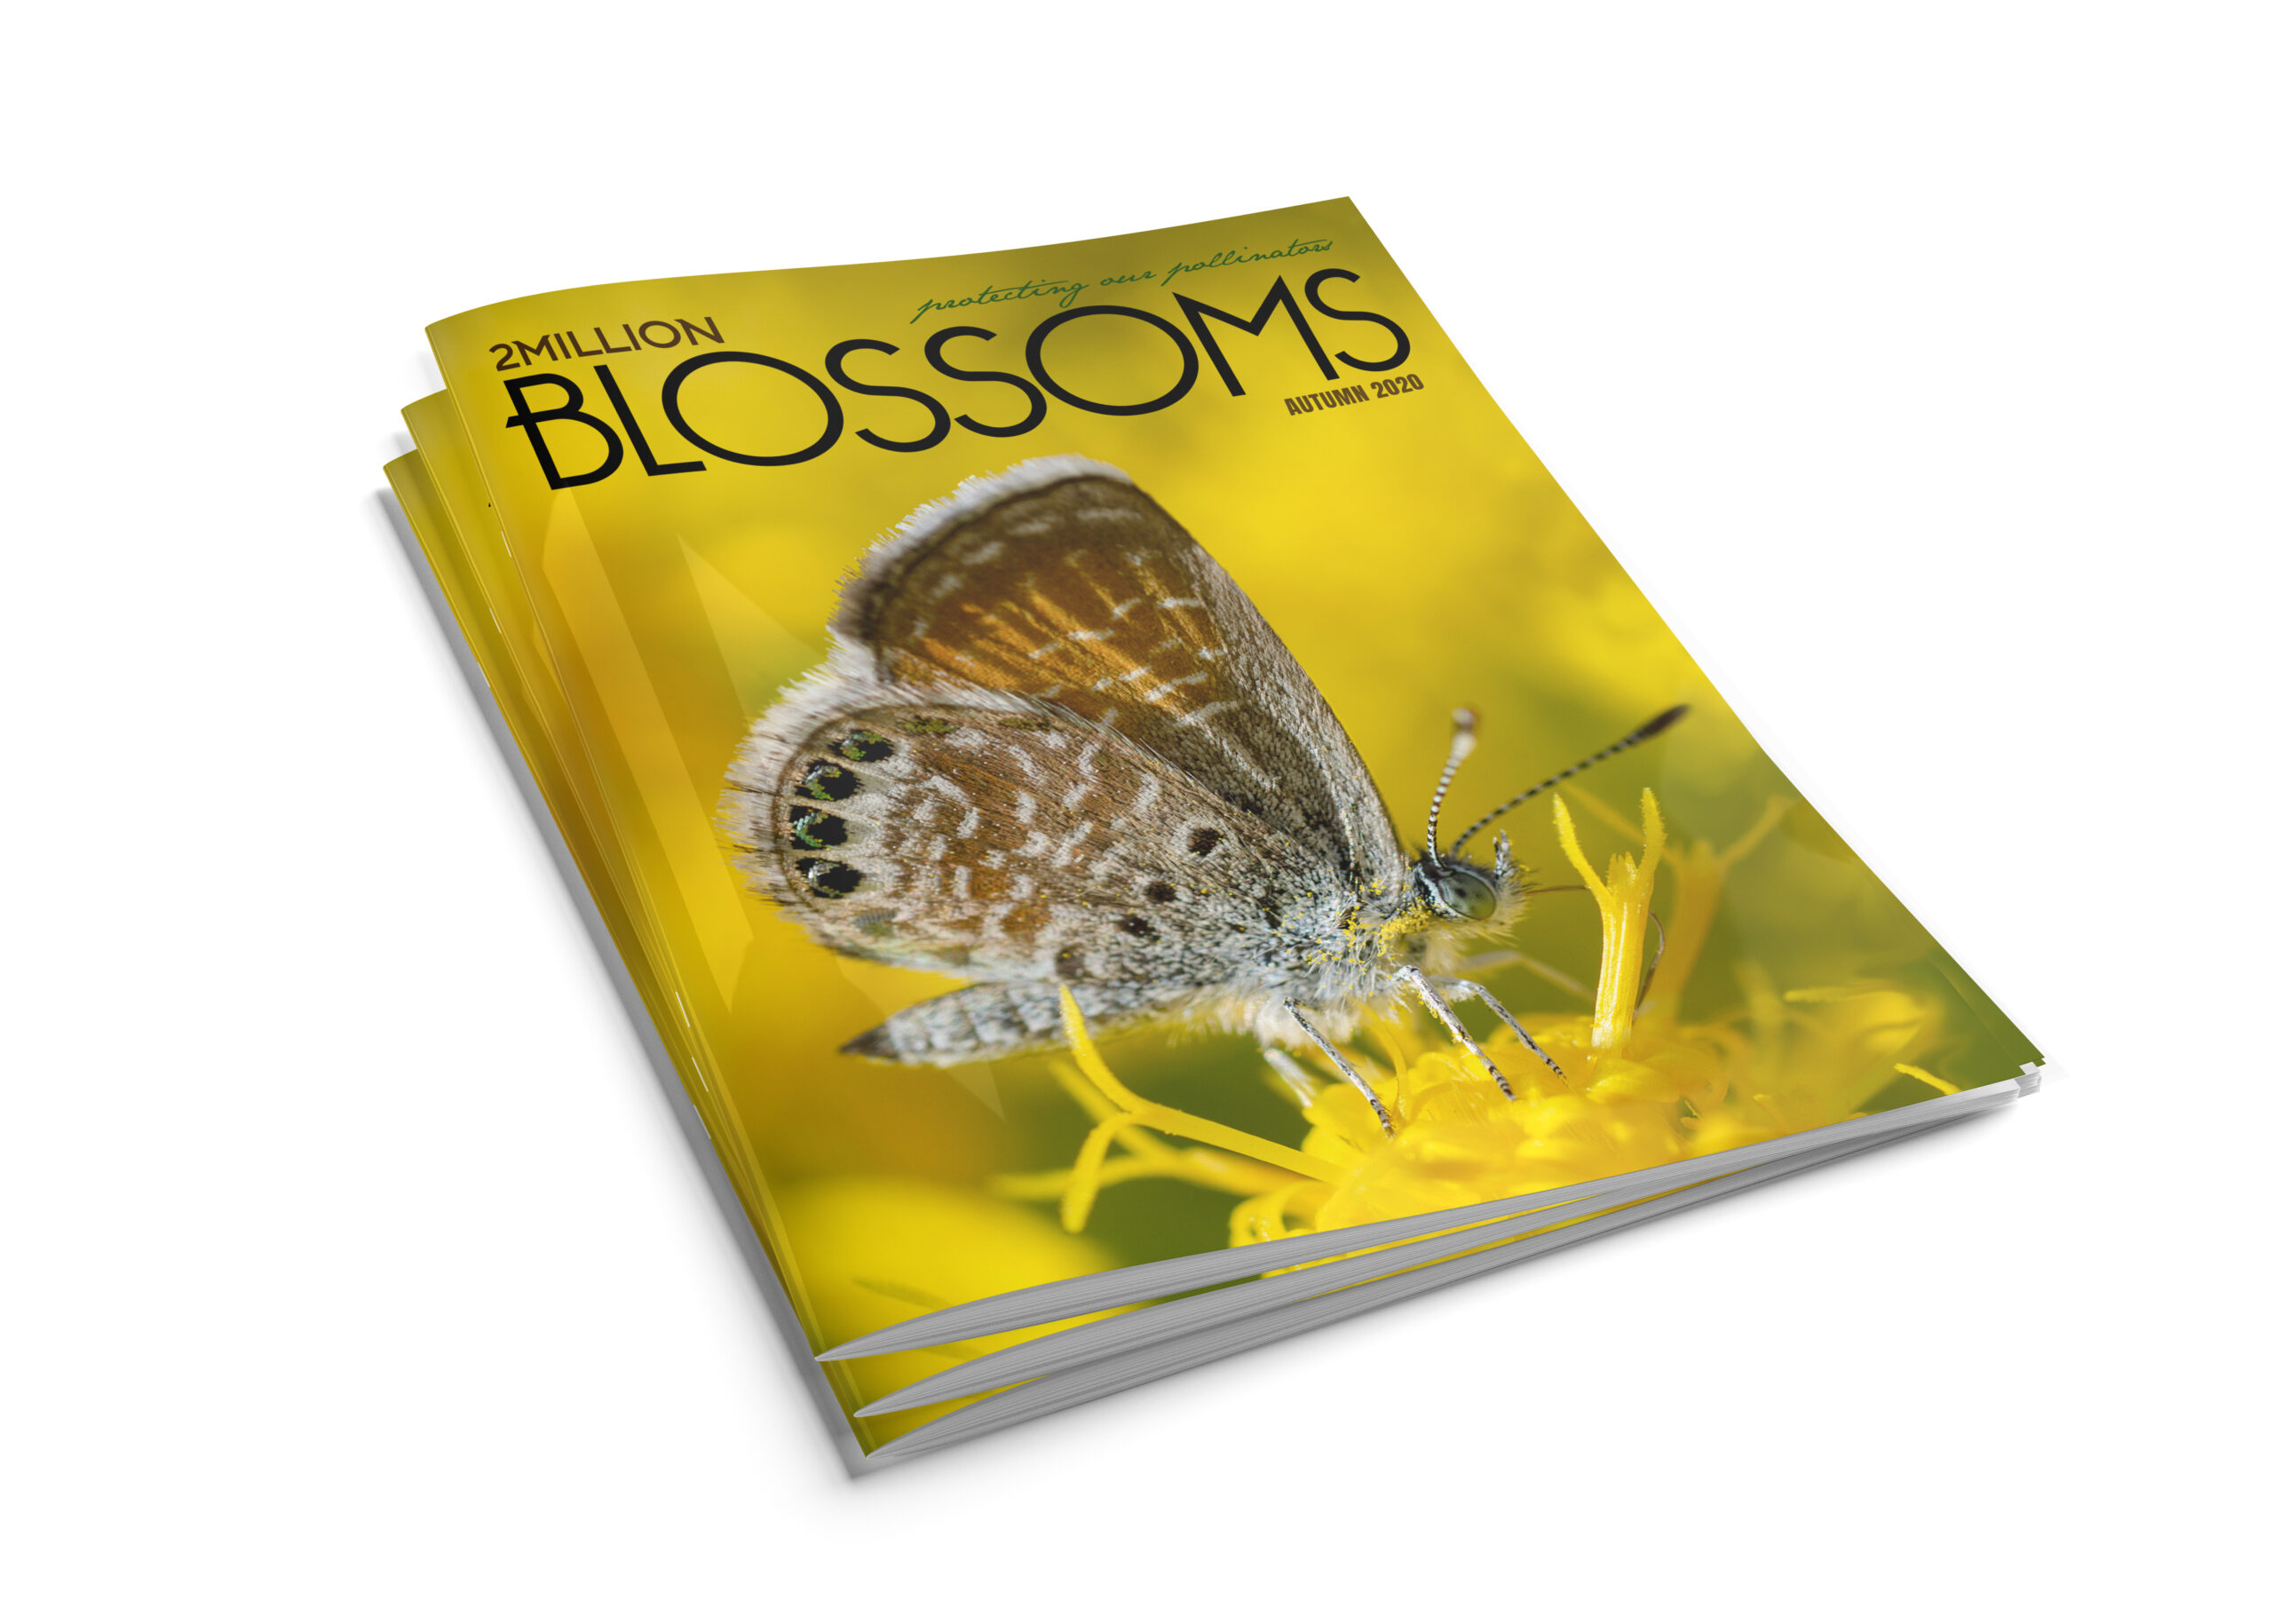 1 year subscription to 2 Million Blossoms magazine